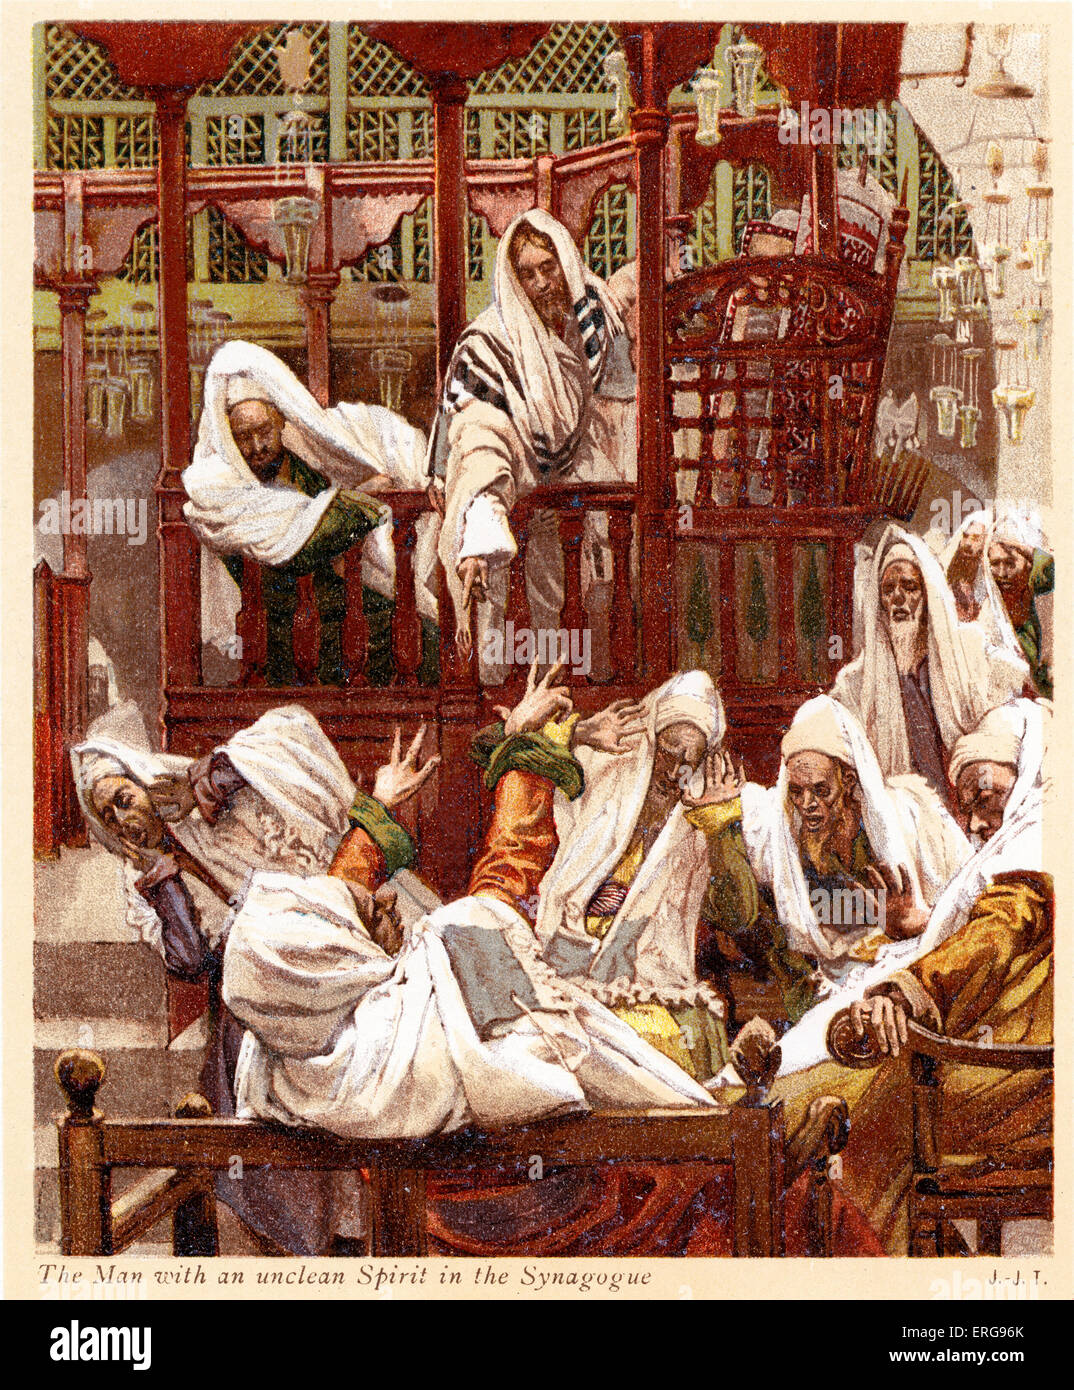 The Man with an unclean Spirit in the Synagogue - St Mark, Chapter 1.  Illustrated by J James Tissot. French painter - Stock Image